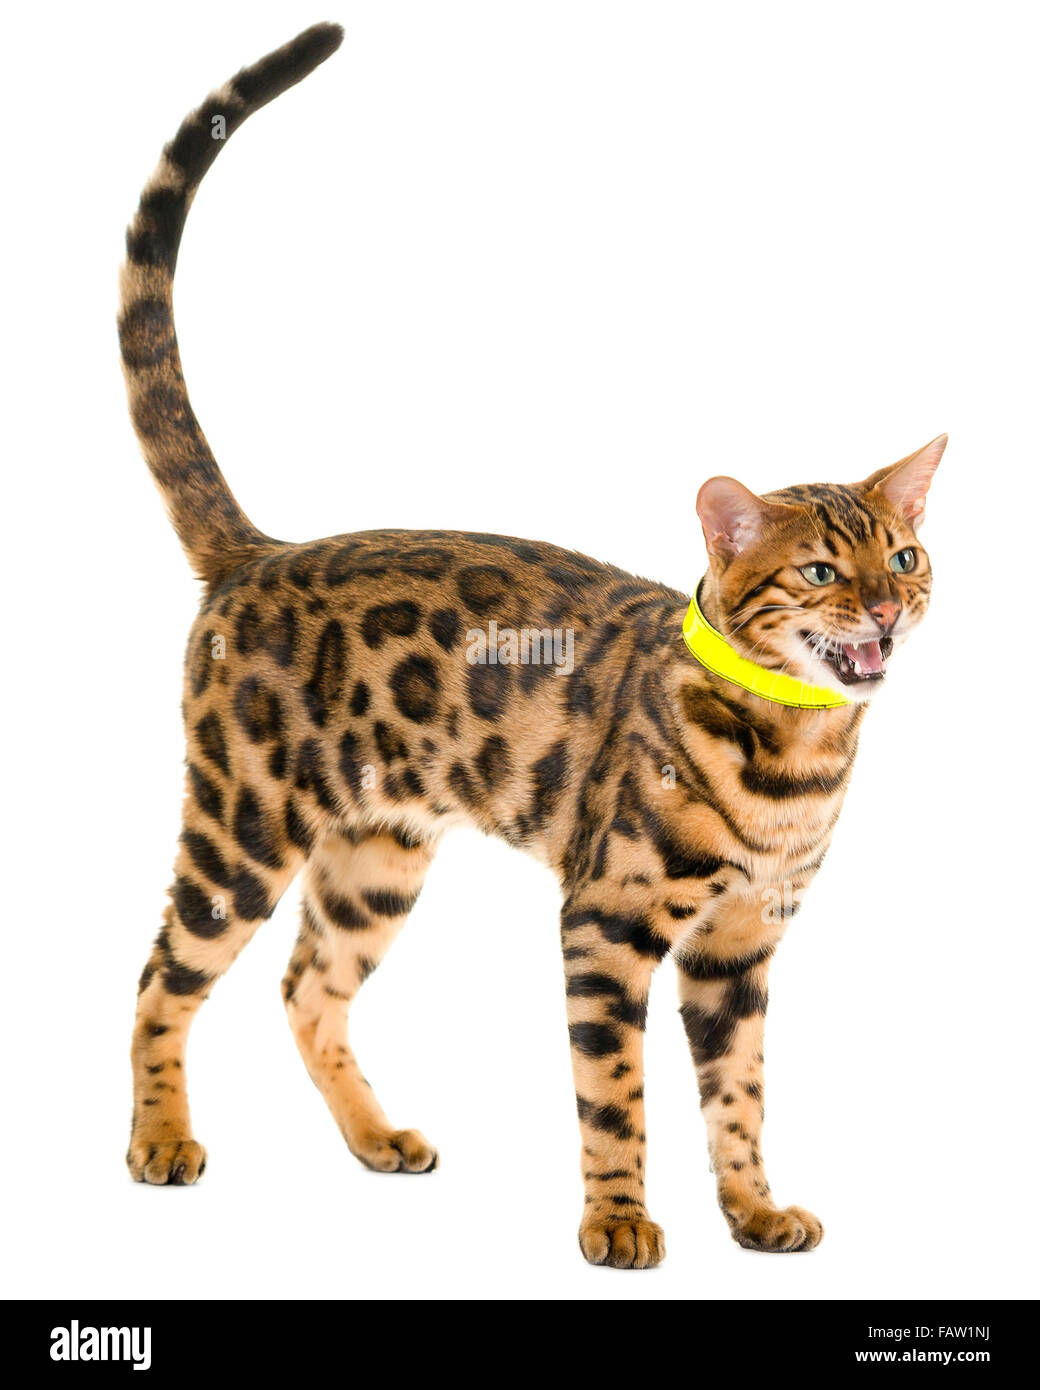 Male Bengal cat roaring or hissing isolated on white background  Model Release: No.  Property Release: No. - Stock Image